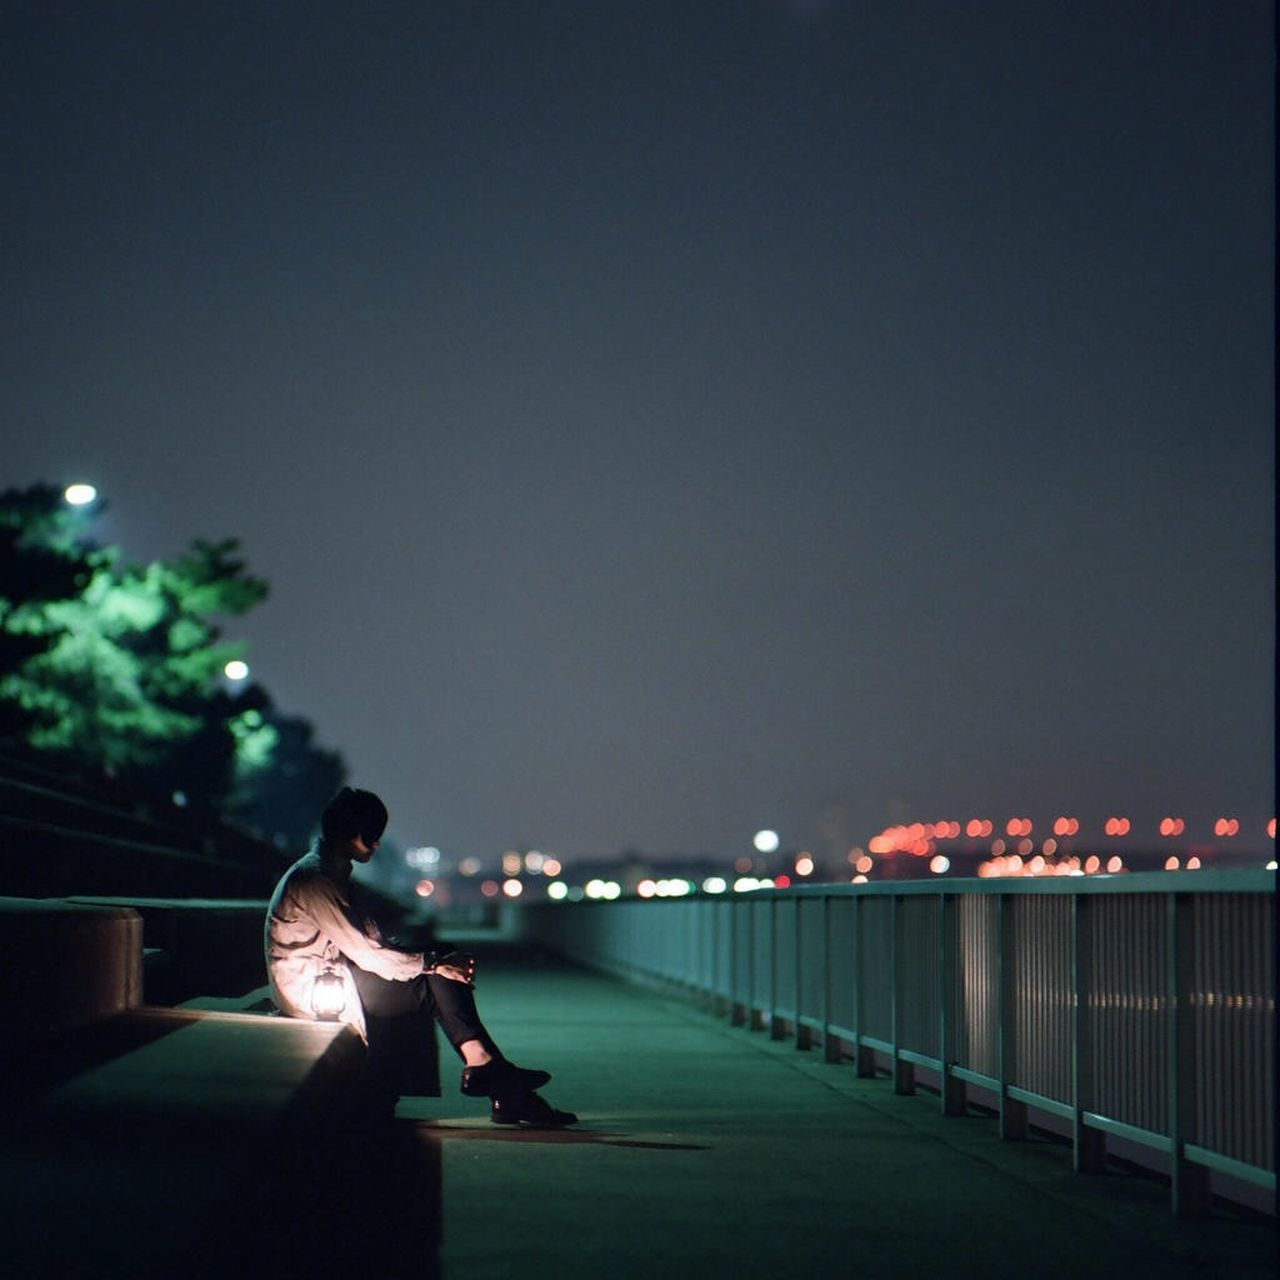 Lonely woman sitting on steps on sidewalk at night